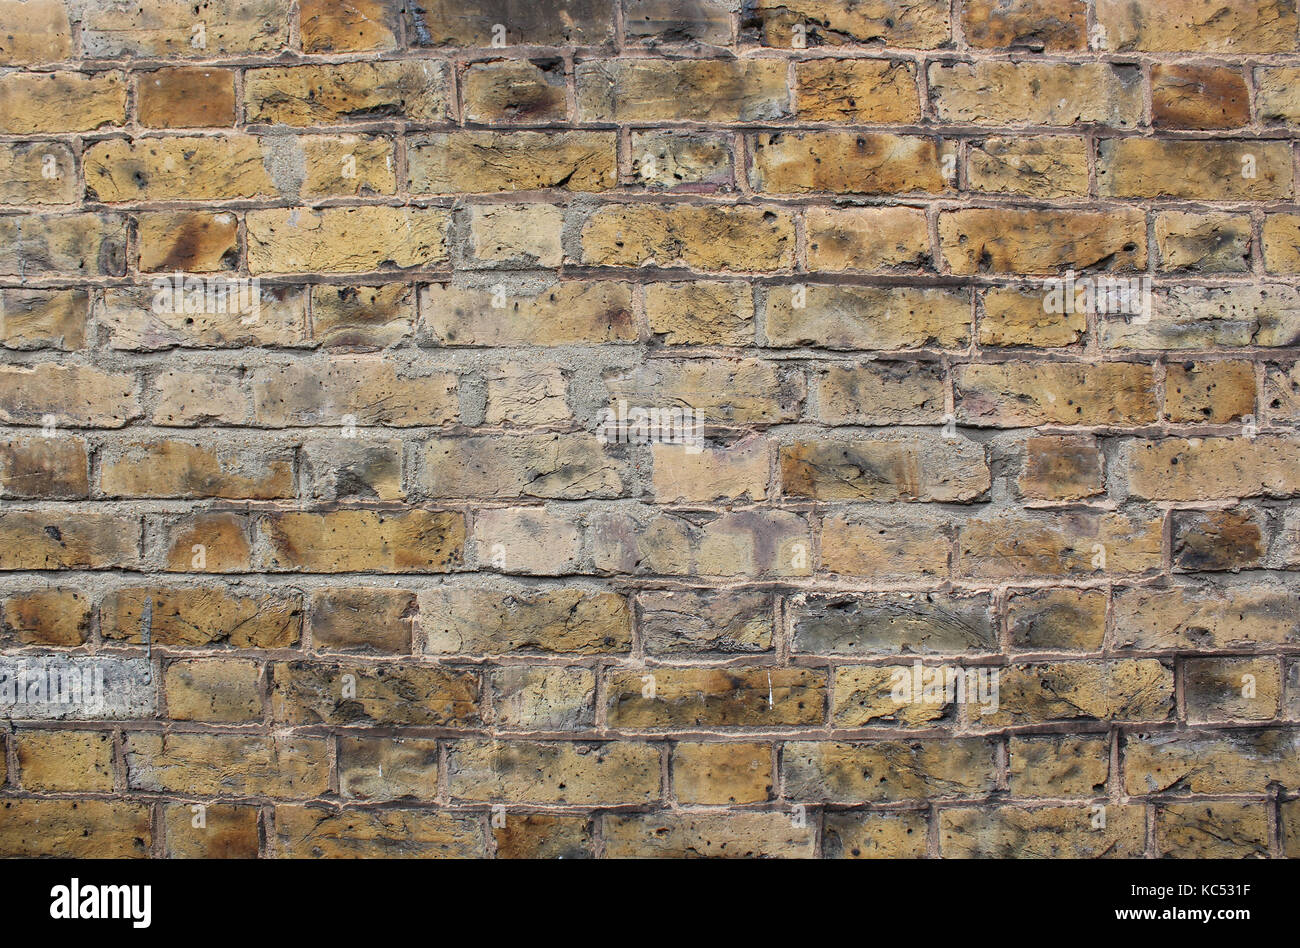 A background of yellow London bricks slightly distressed - Stock Image